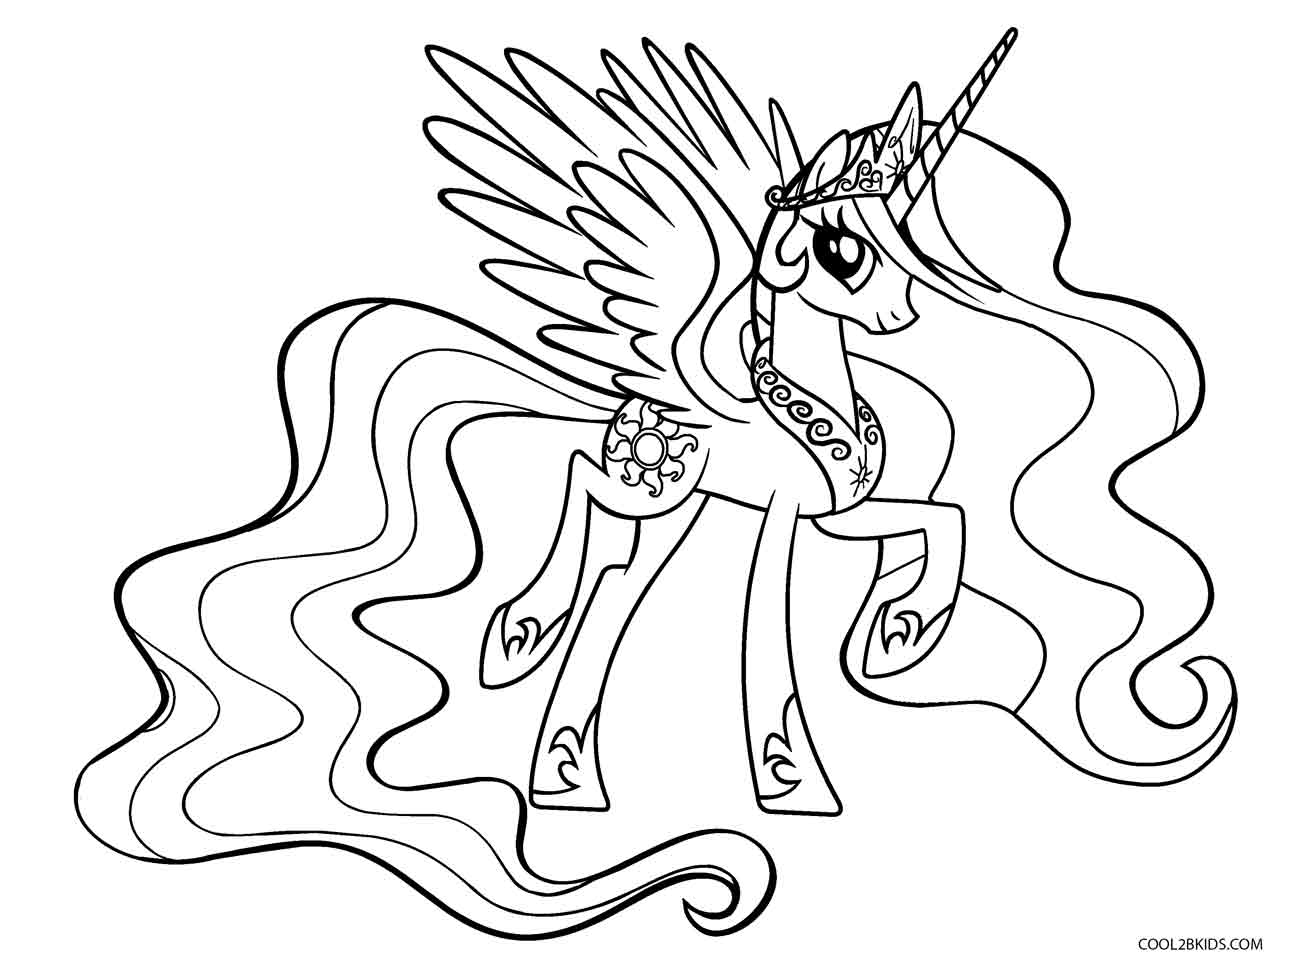 1300x971 Free Printable My Little Pony Coloring Pages For Kids Cool2bkids